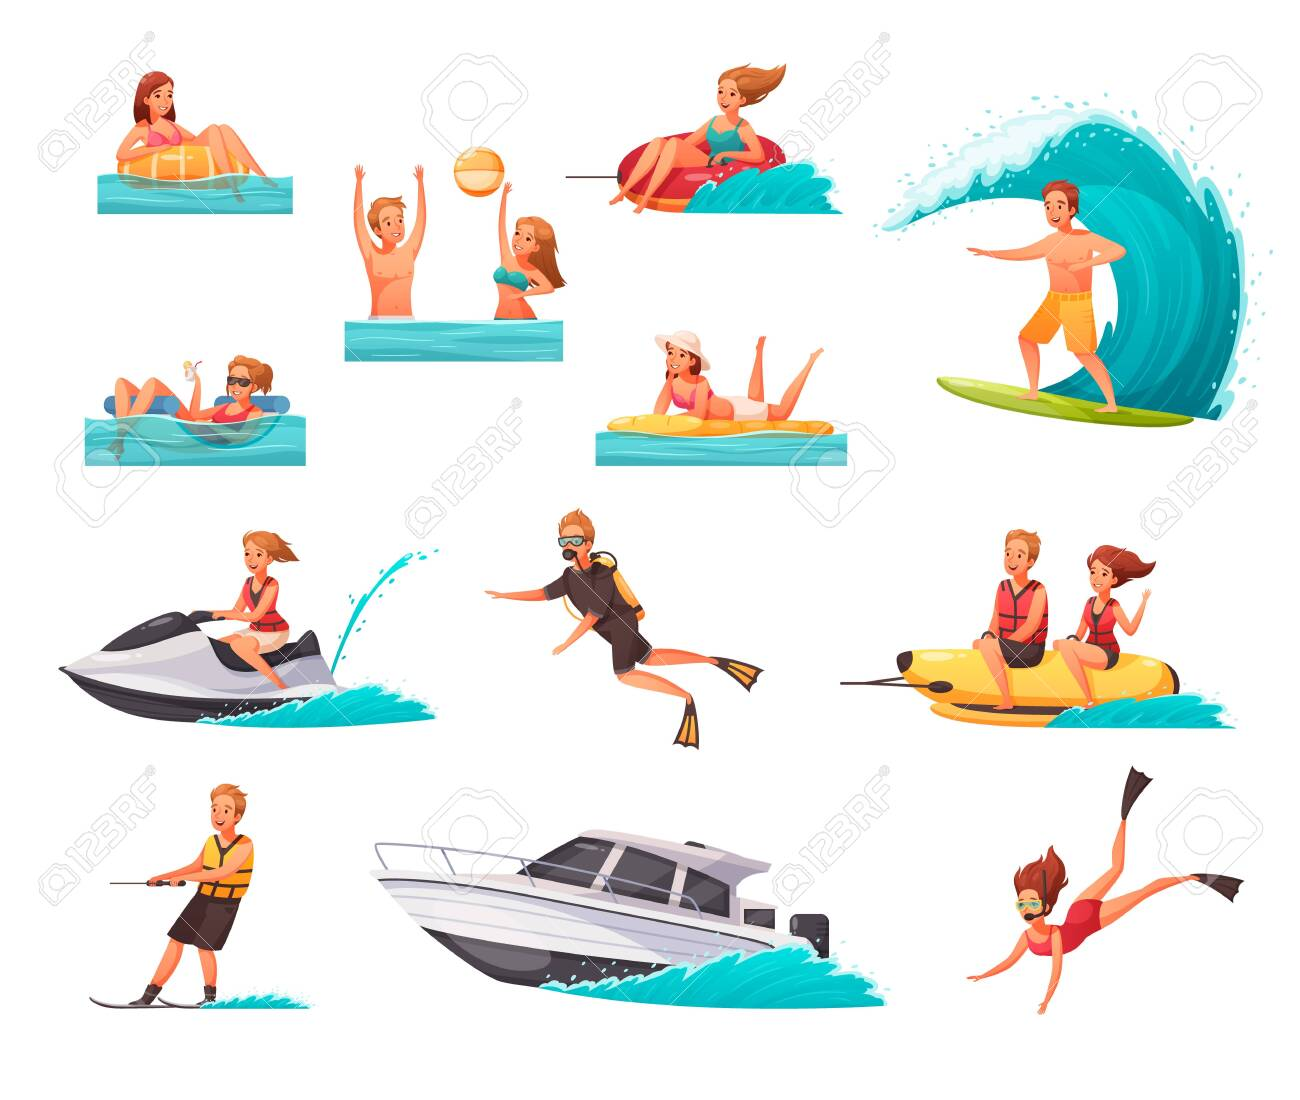 Cartoon set of icons with people doing water sports and playing in sea isolated on white background vector illustration - 132791387